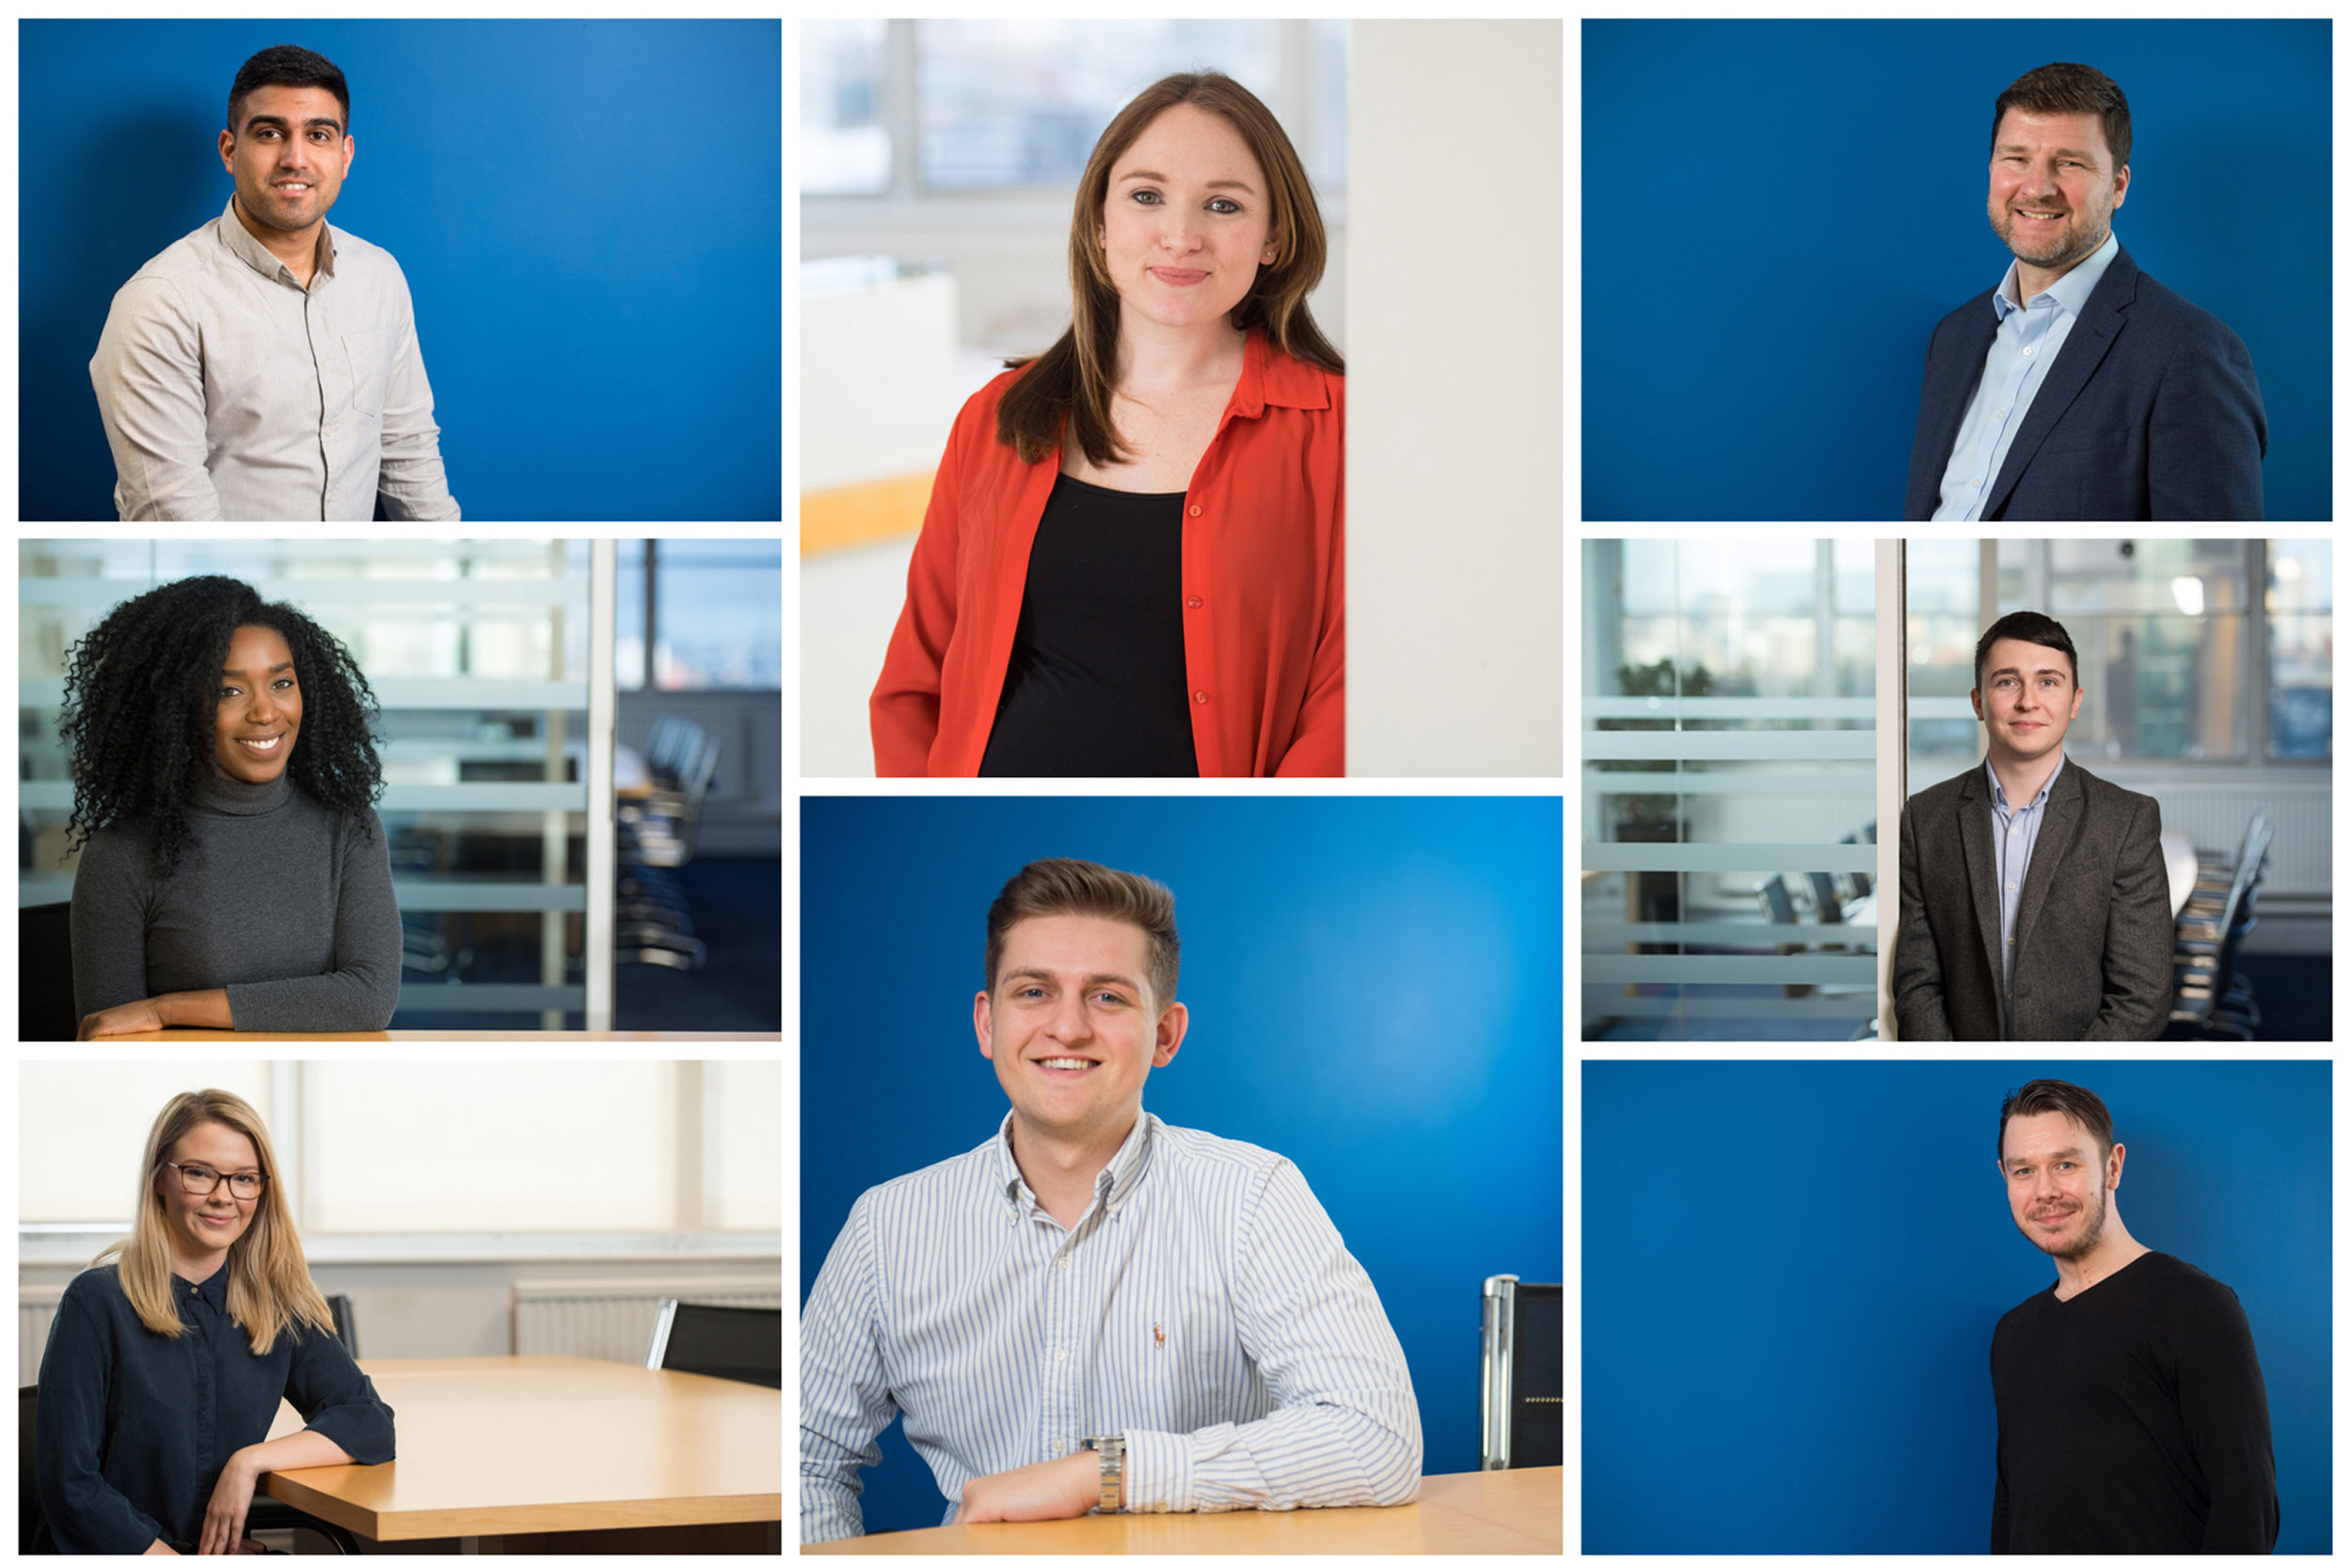 Freelance team portraits for business in Manchester. Photography by Manchesterphotographer.com